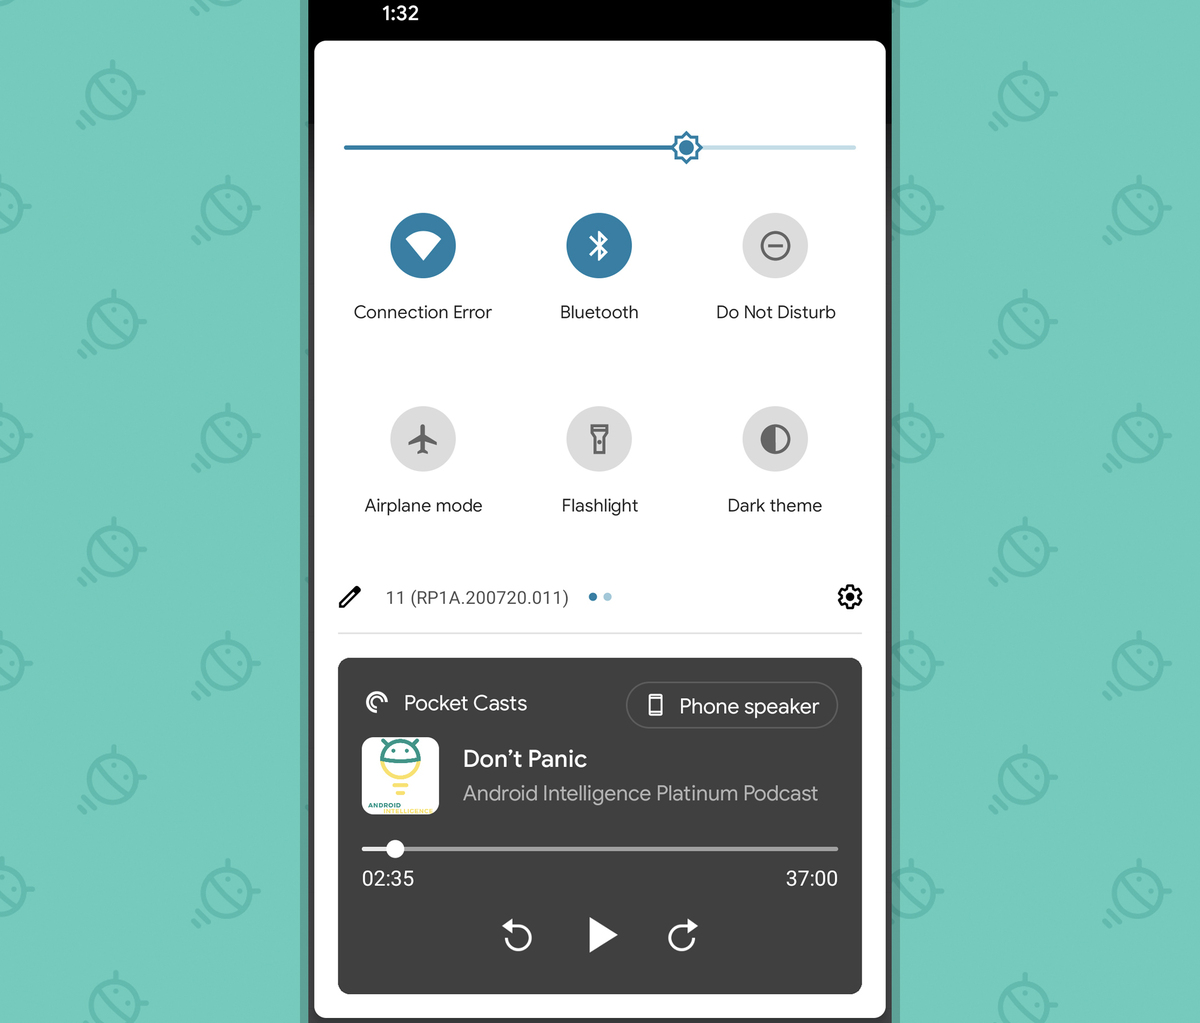 Android 11: media player